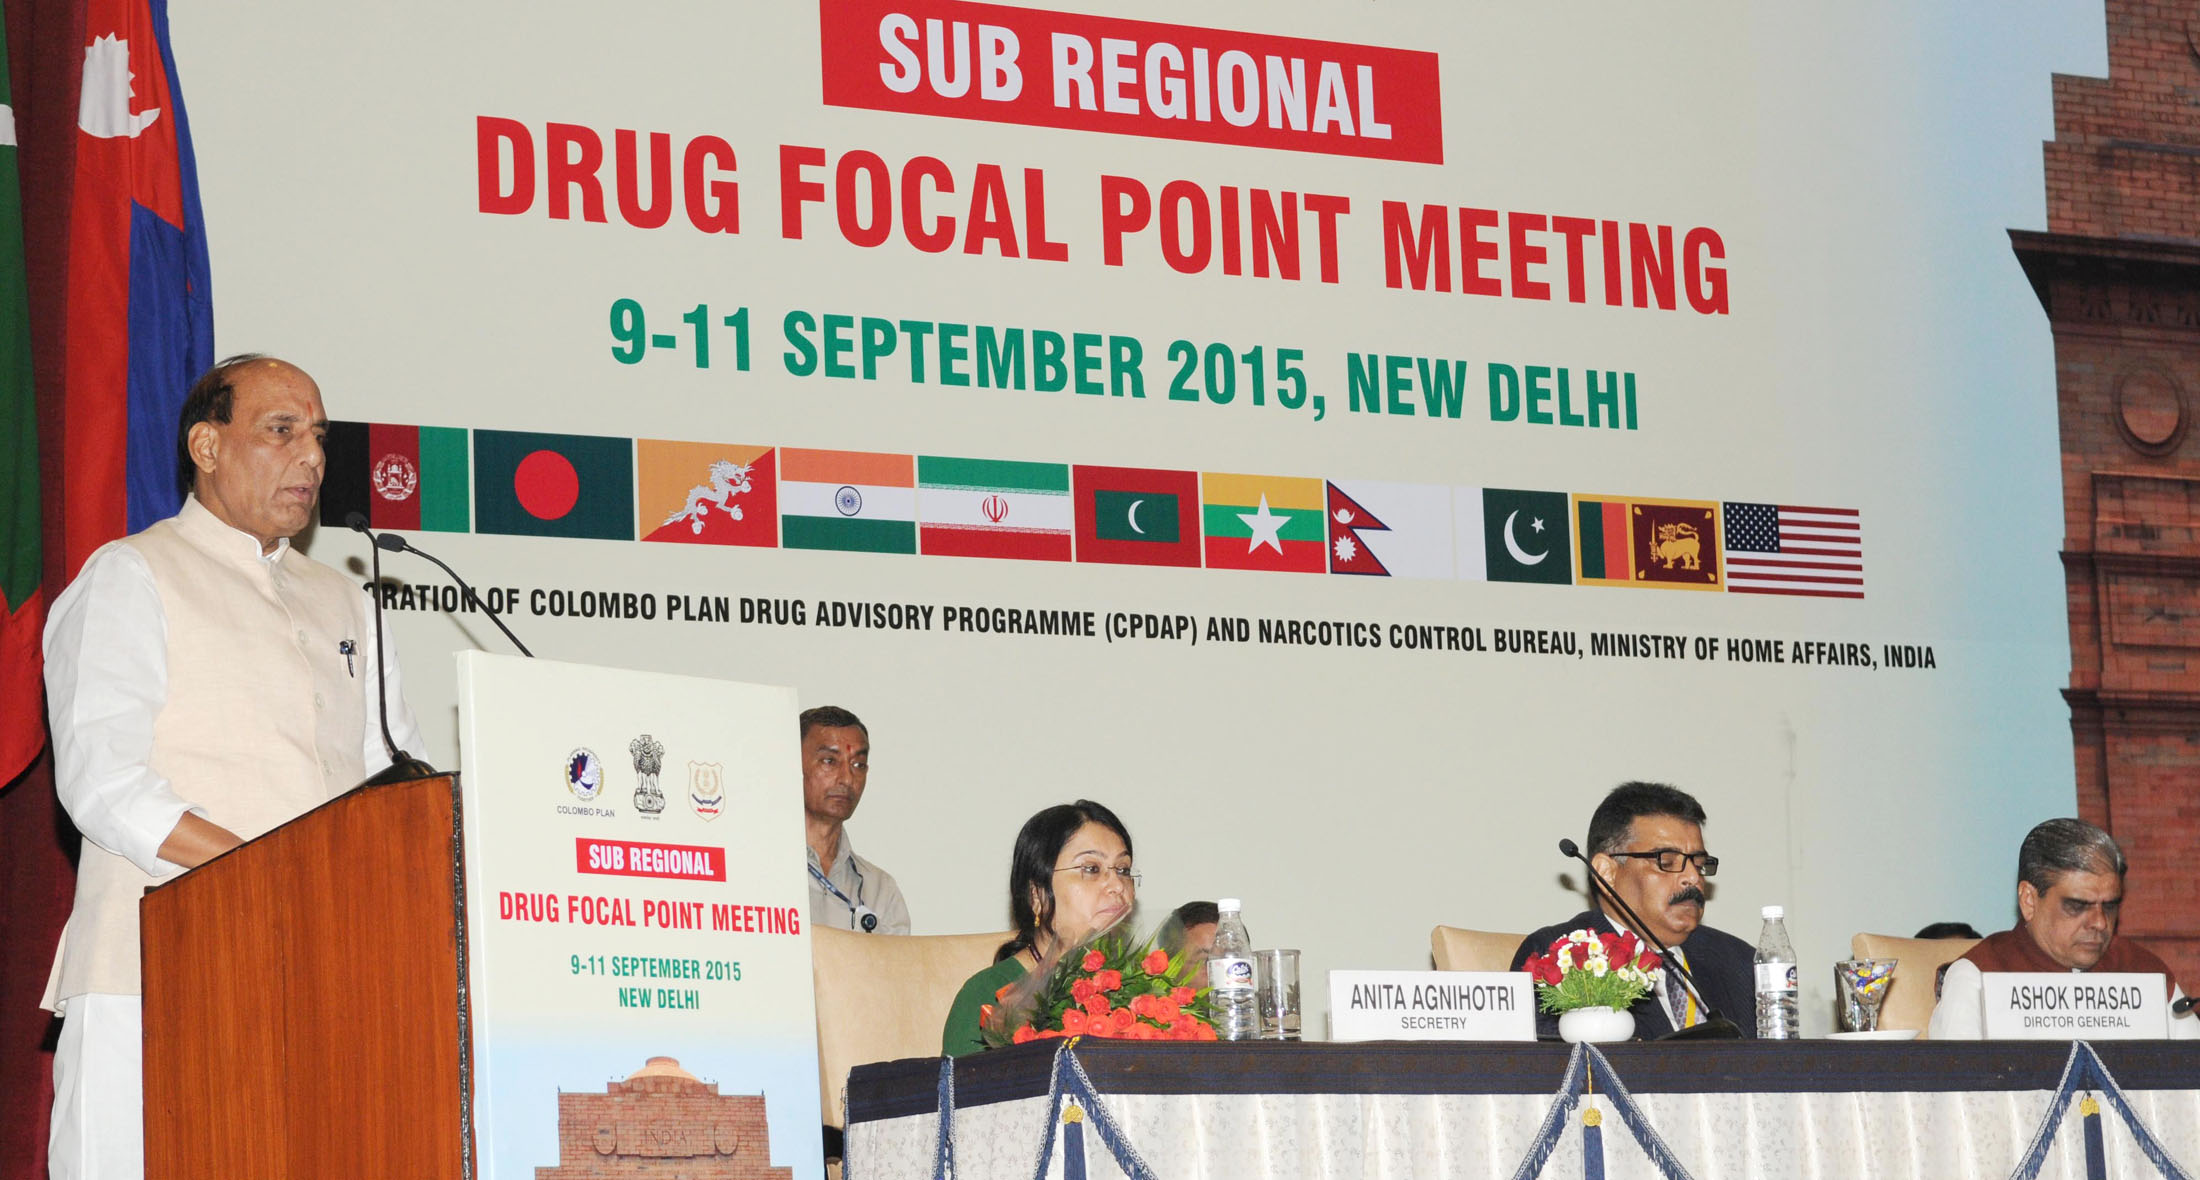 The Union Home Minister, Shri Rajnath Singh addressing at the inauguration of a three-day workshop on Sub-Regional Drug 'Focal Point Meeting and DDR Expert Group Consultation, South Asia under Colombo Plan Drug Advisory Programme', in New Delhi on September 09, 2015.   The Minister of State for Home Affairs, Shri Haribhai Parthibhai Chaudhary and other dignitaries are also seen.